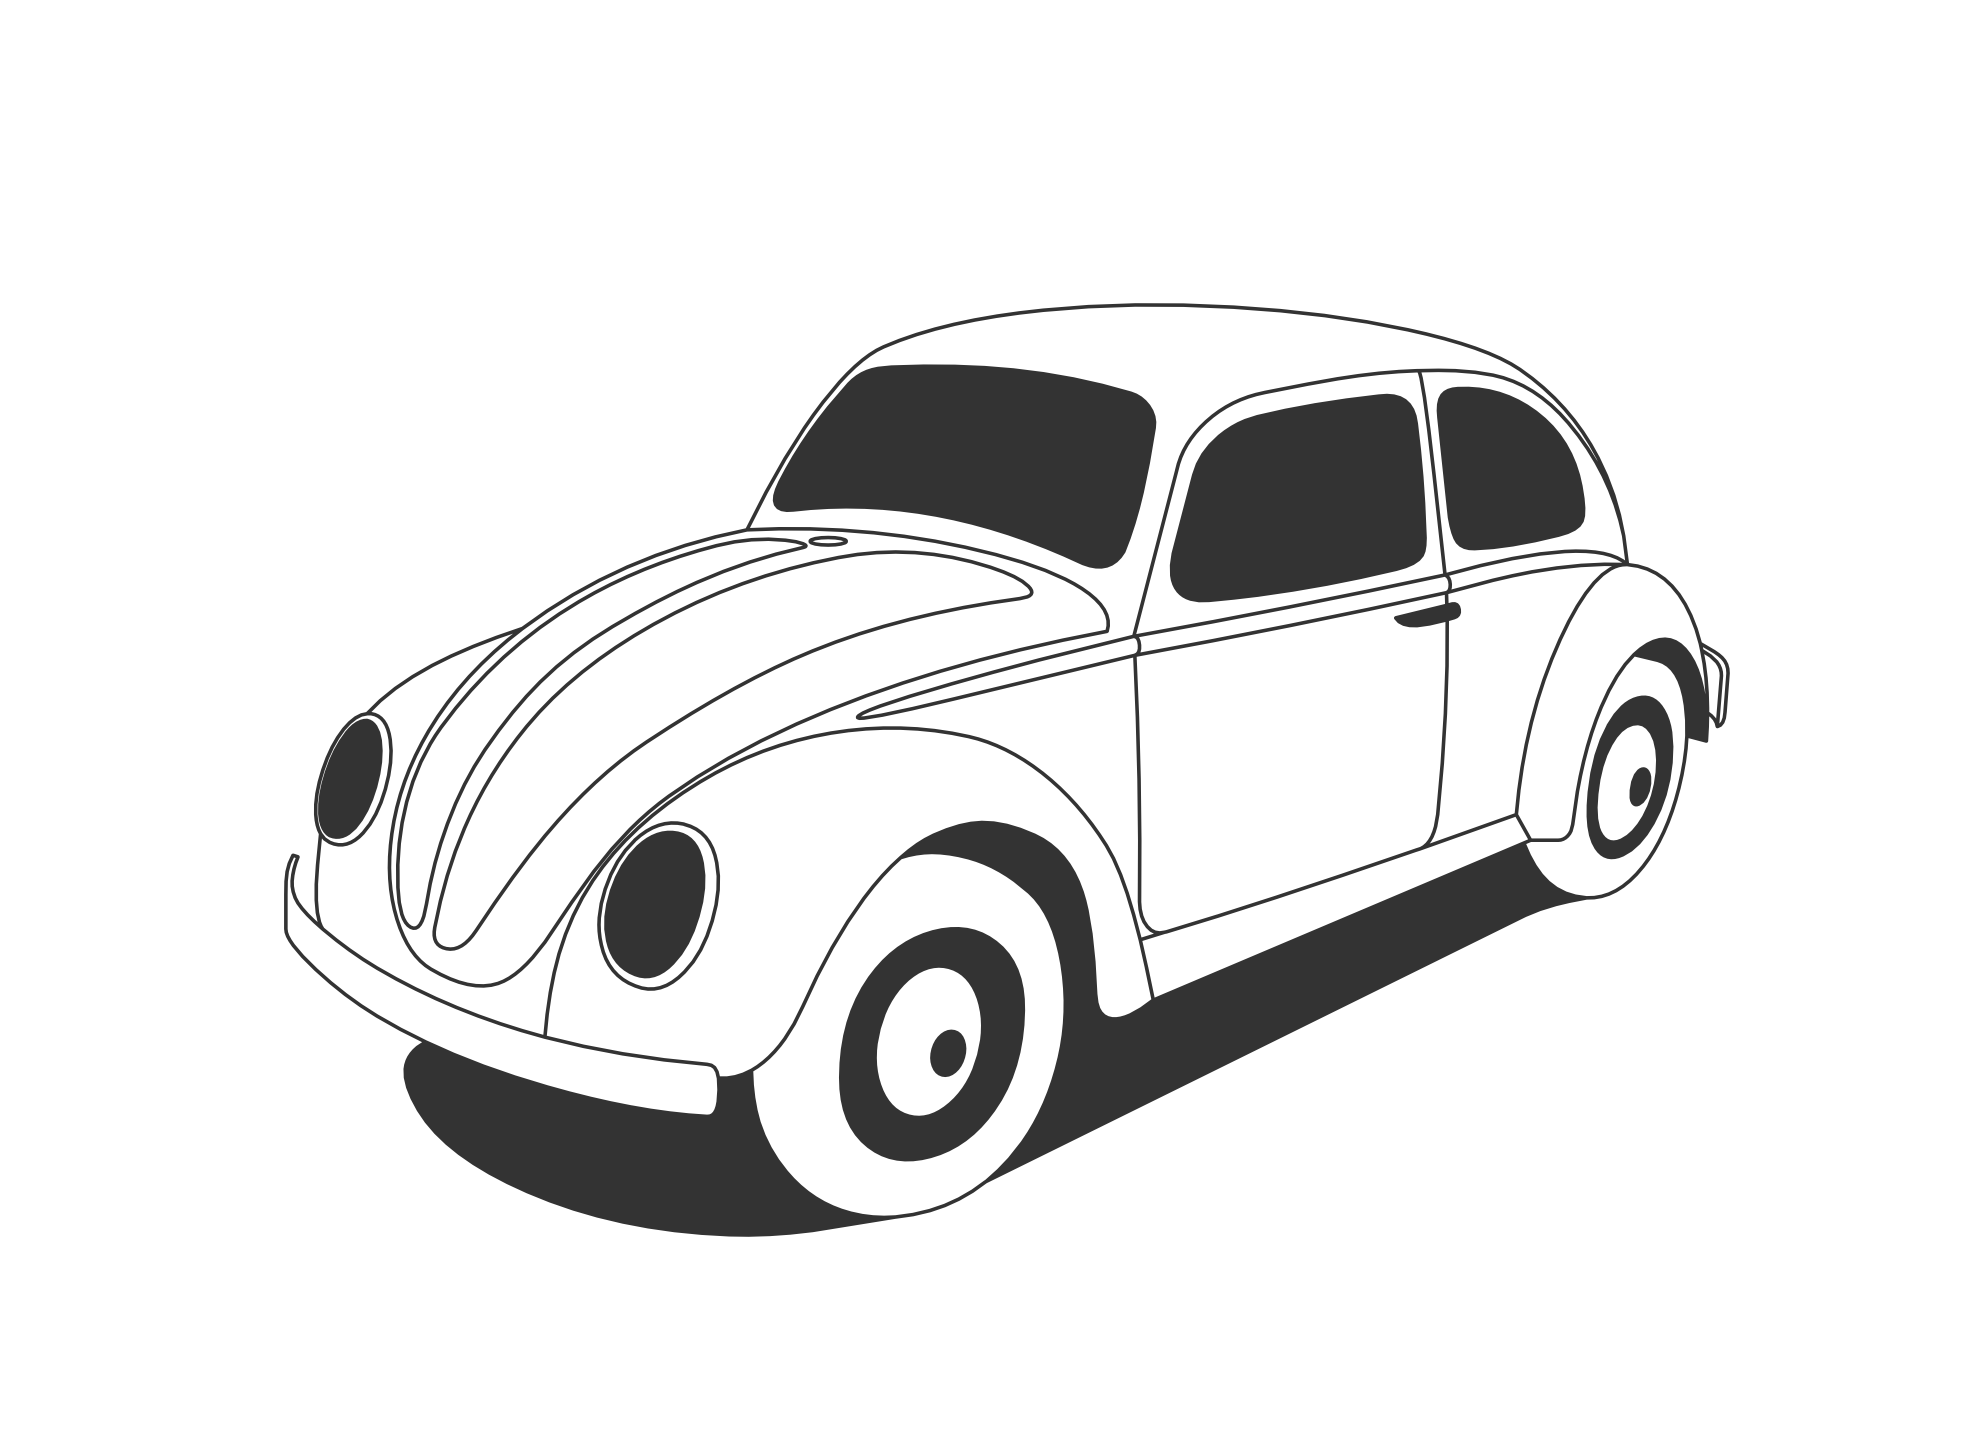 Clipart cars beetle. Vw black and white